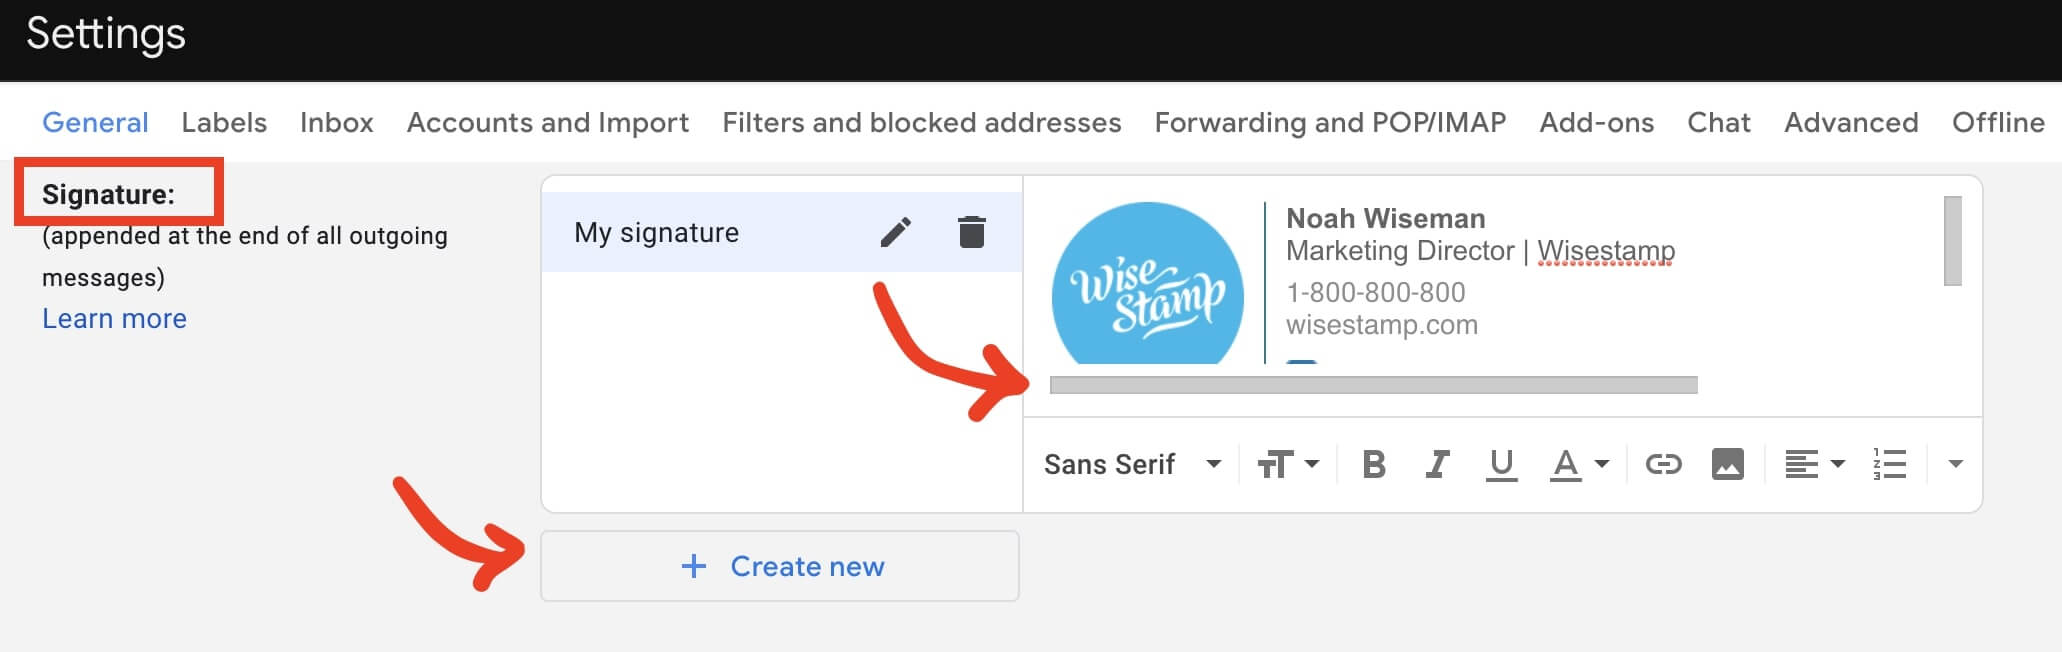 how to add a hyperlink in gmail - step 3